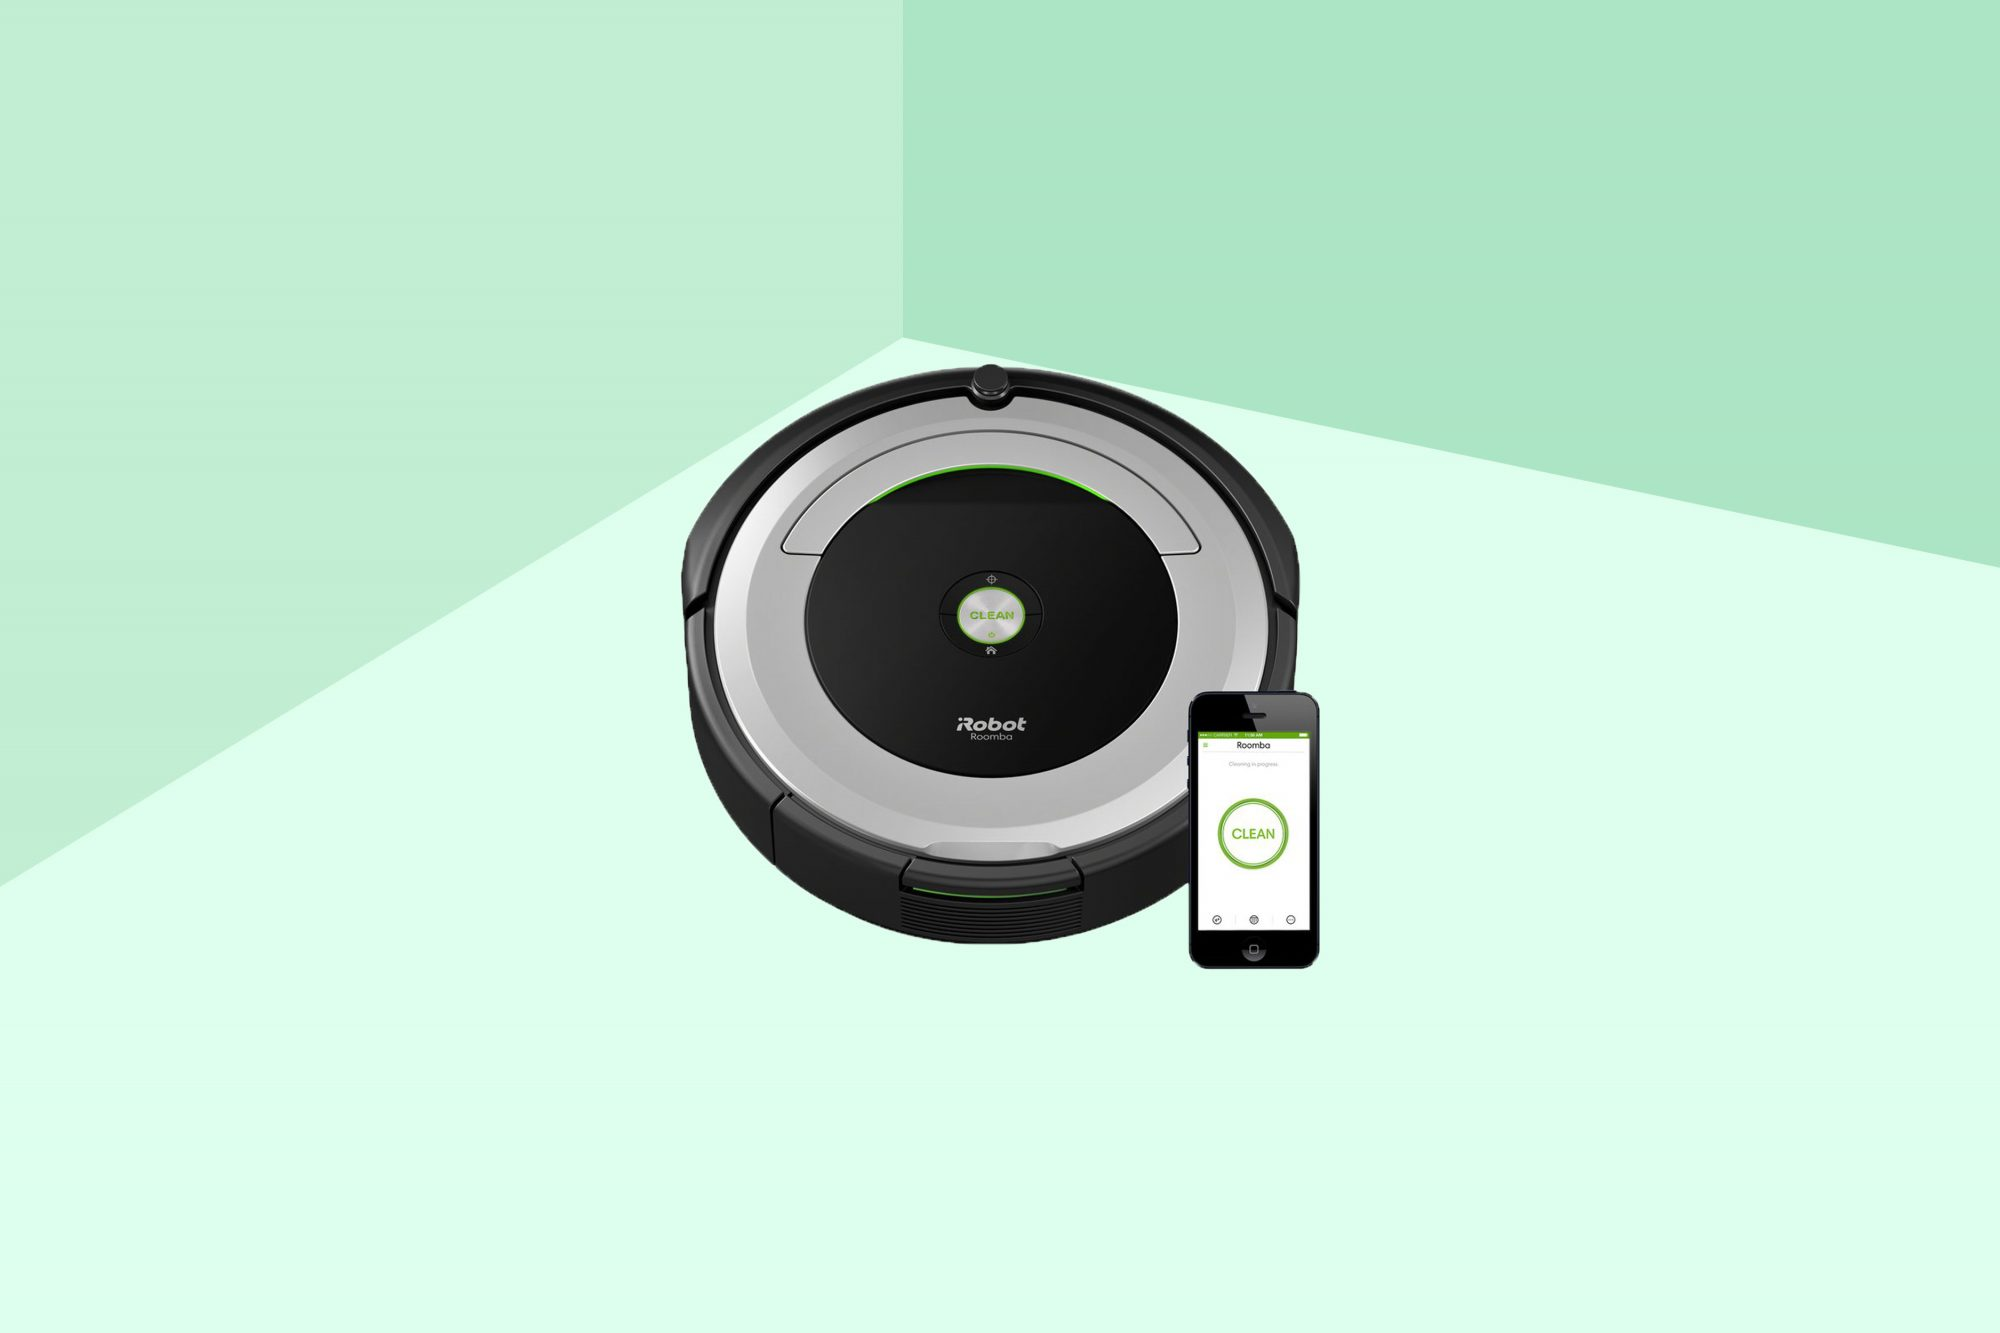 Get up to 50% off Top-Rated Vacuums DuringWayfair'sOne-Day Sale